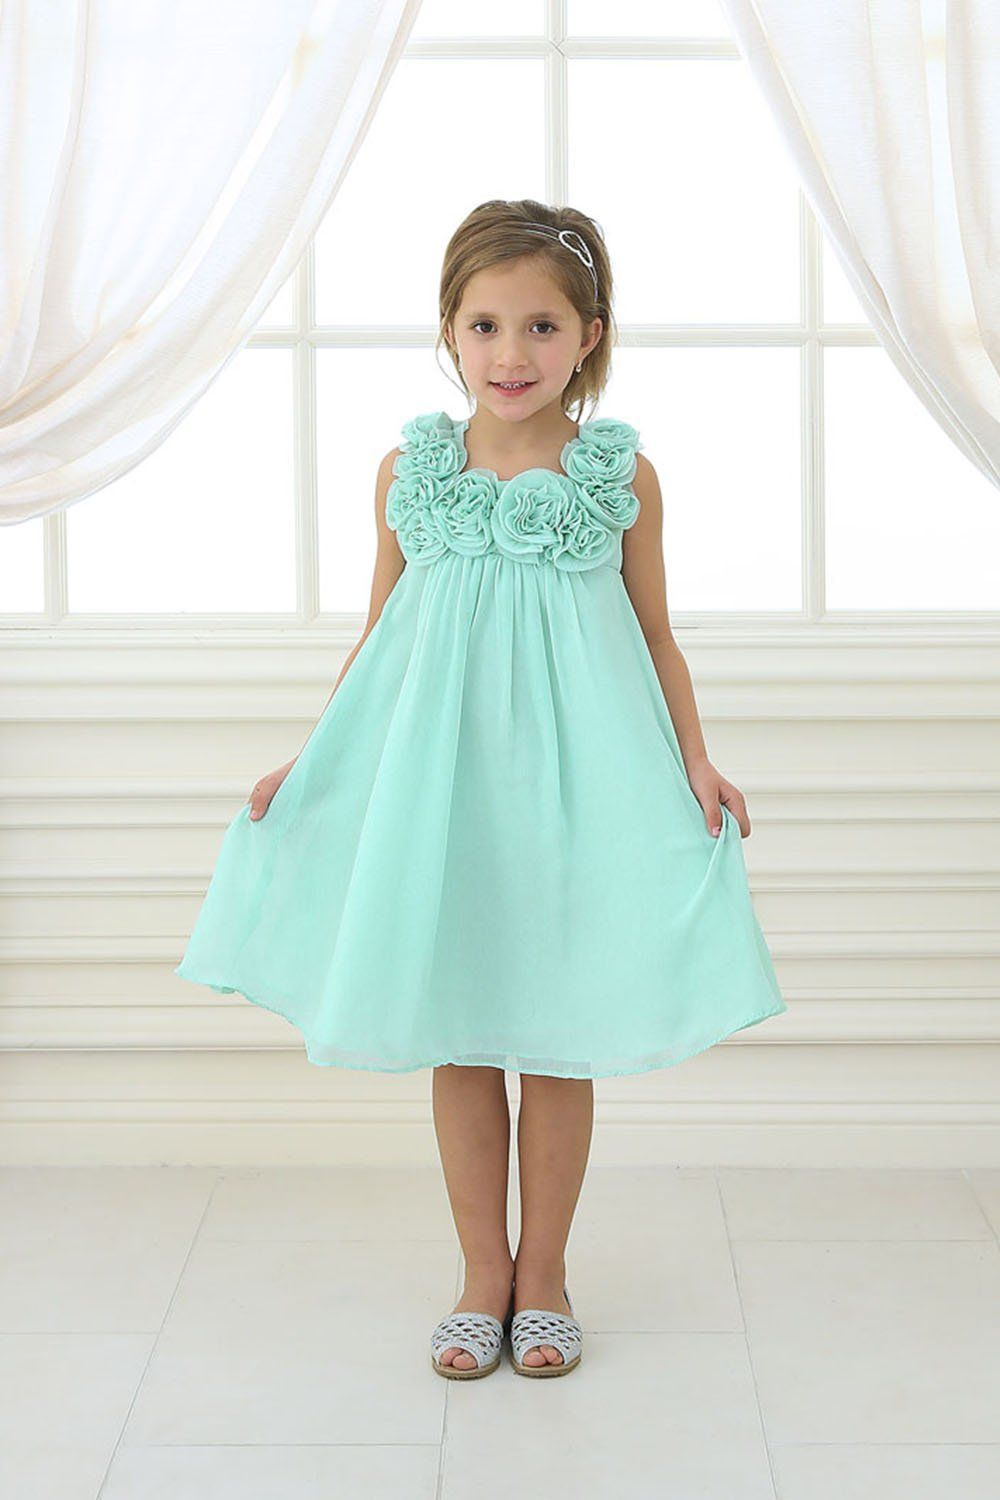 Aqua Mint Chiffon Short Flower Girl Dress | May 19, 2018 | Pinterest ...